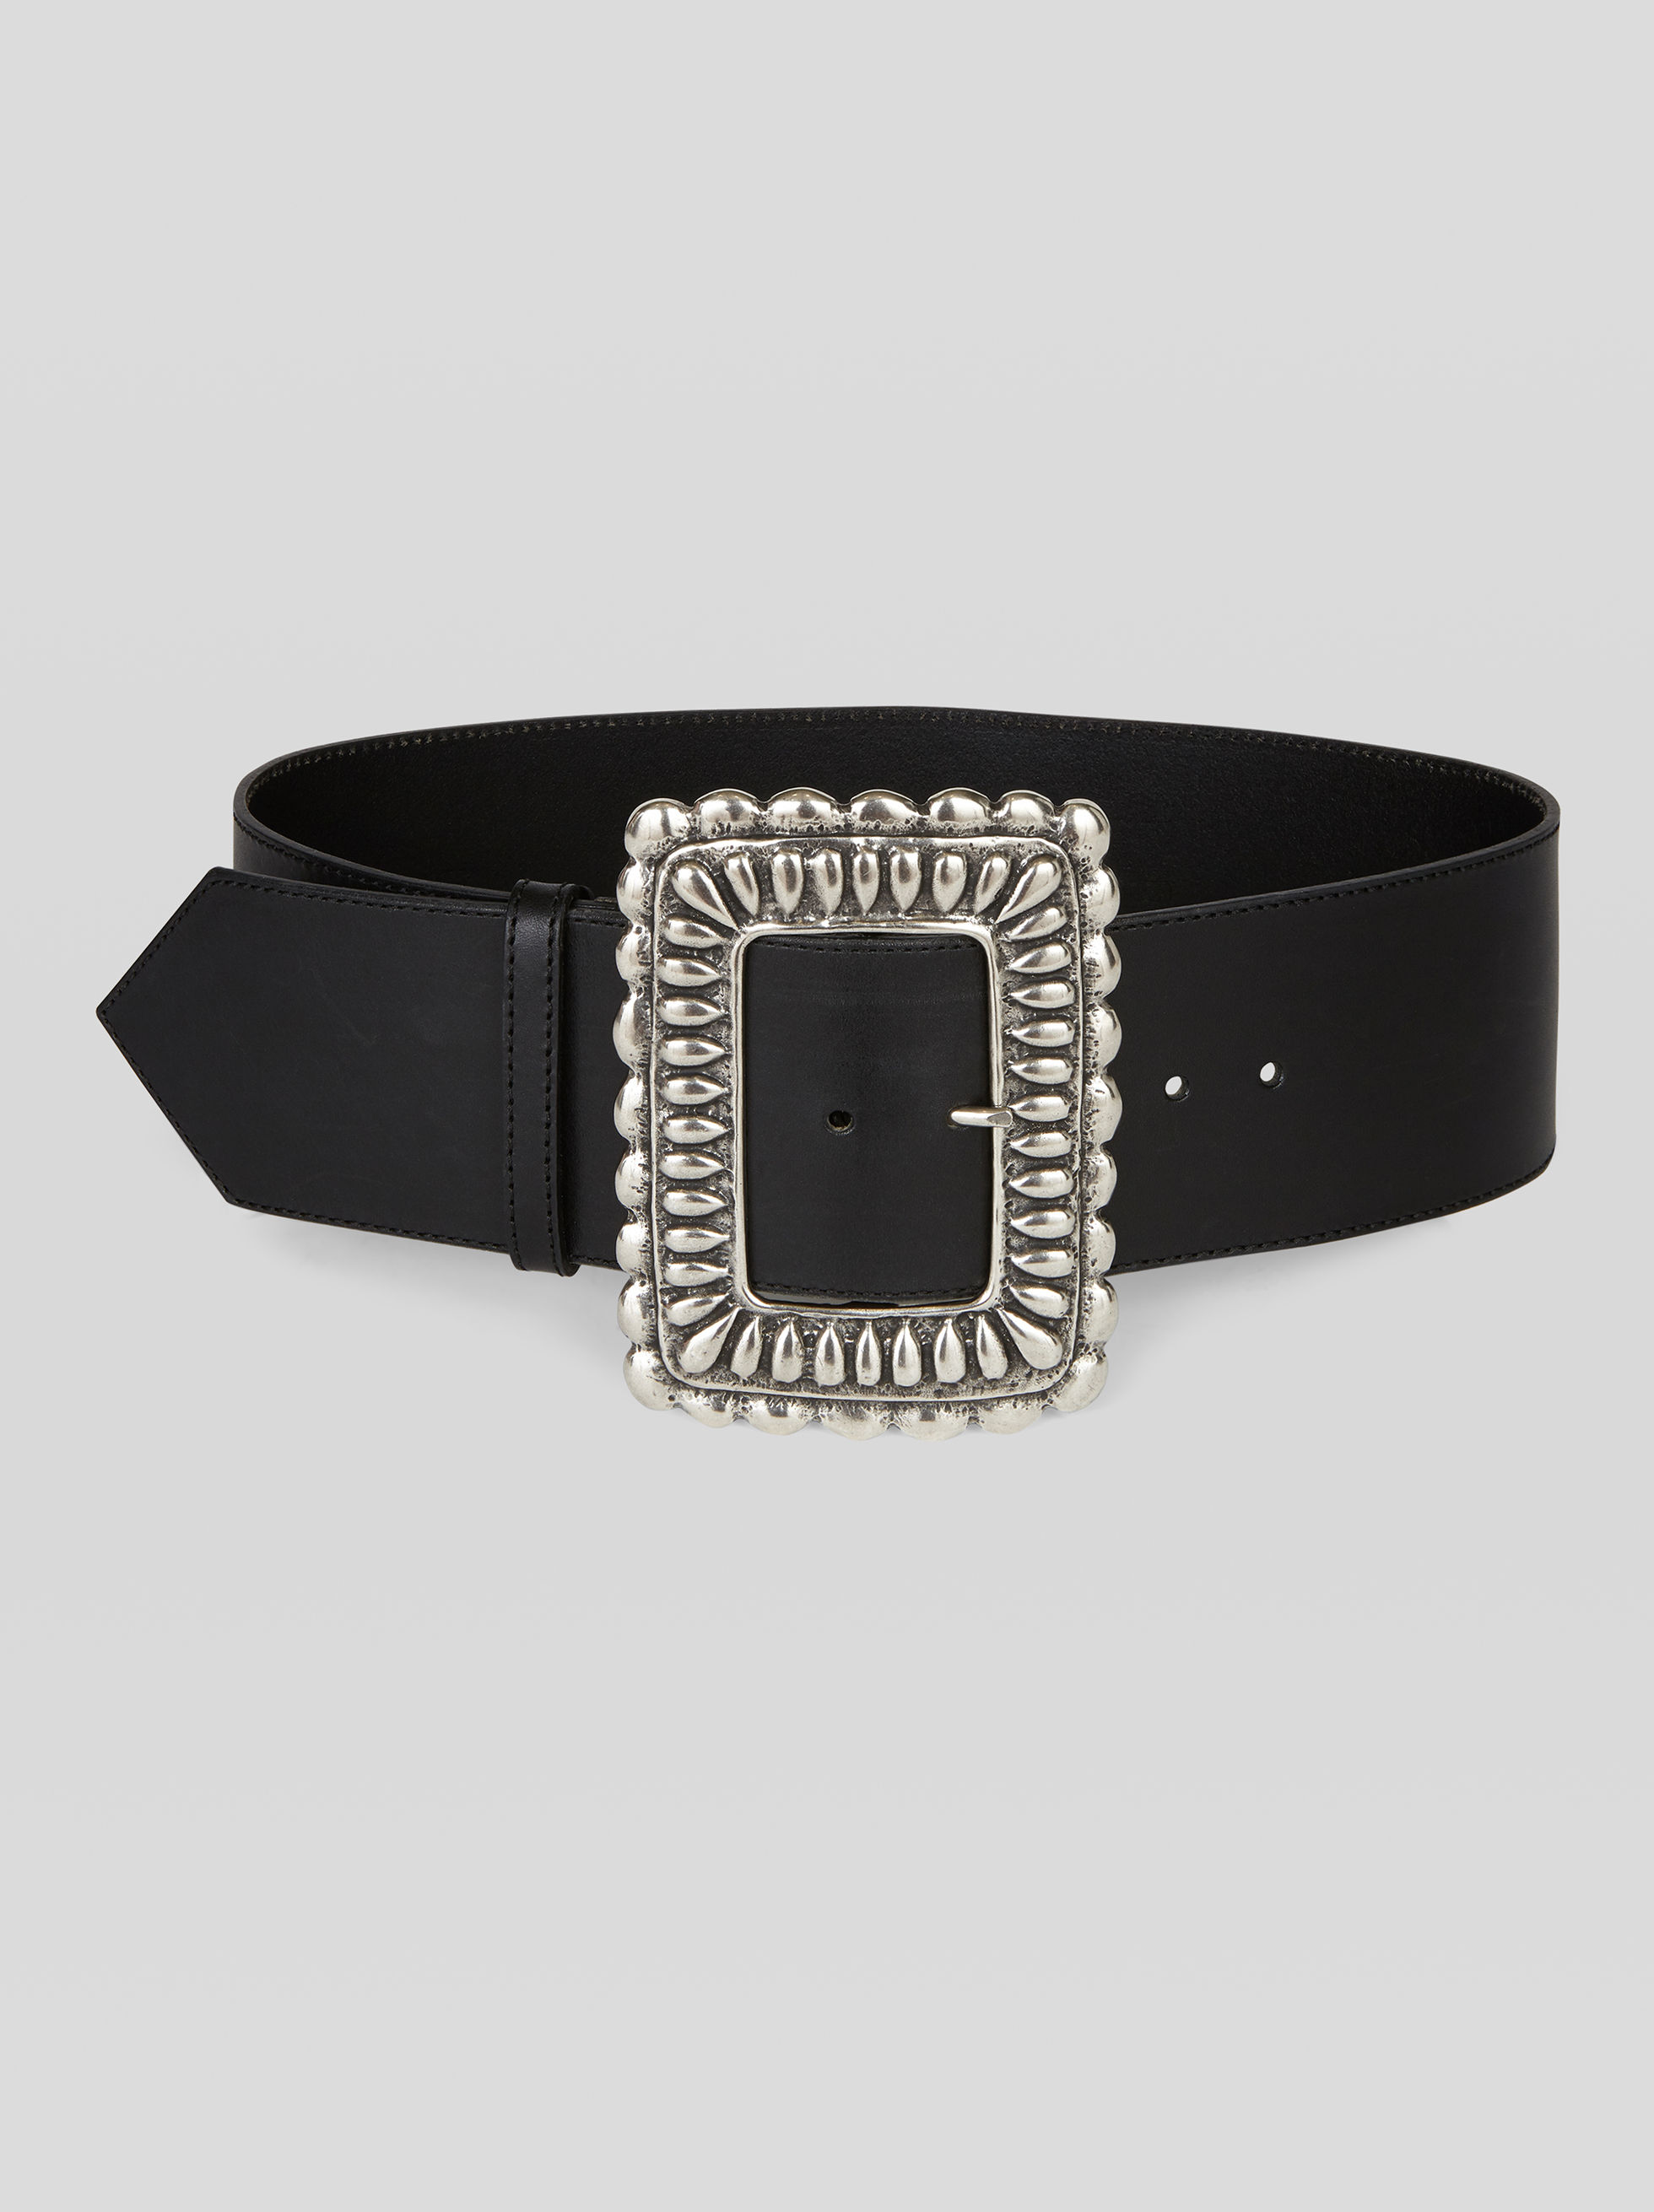 LEATHER BELT WITH MAXI BUCKLE